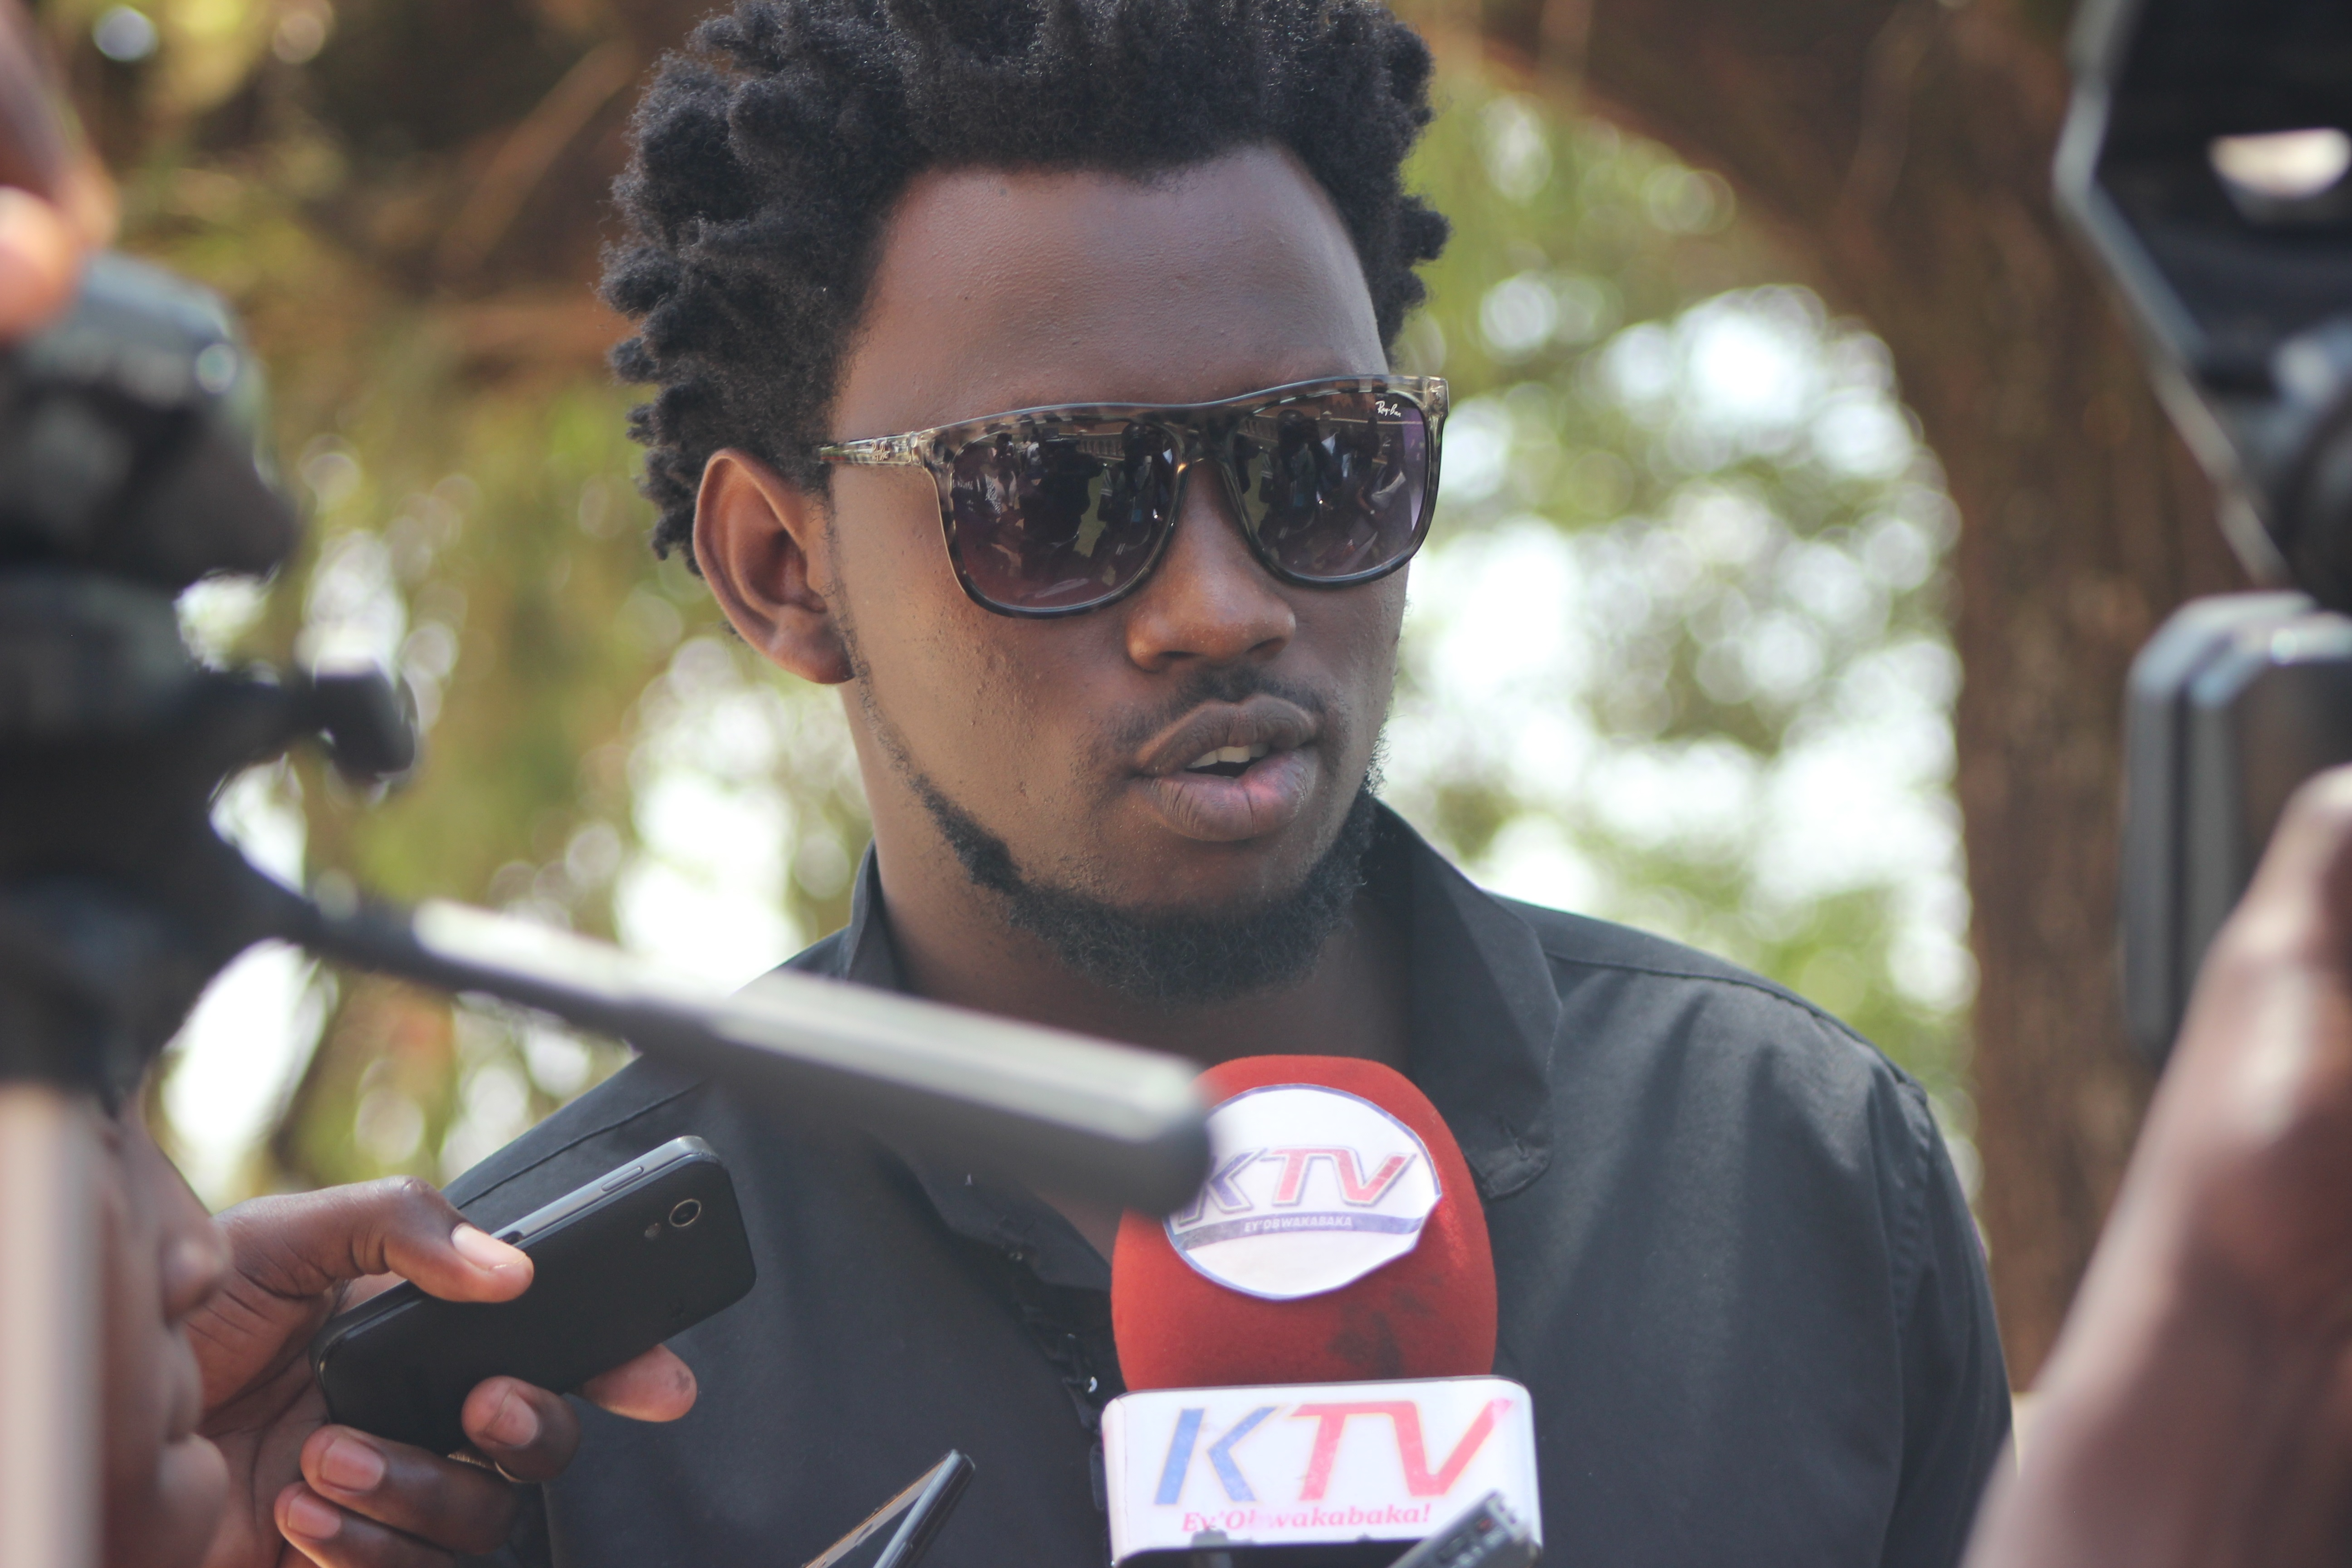 Budding singer Levixone from Leone Island was at the prayer service